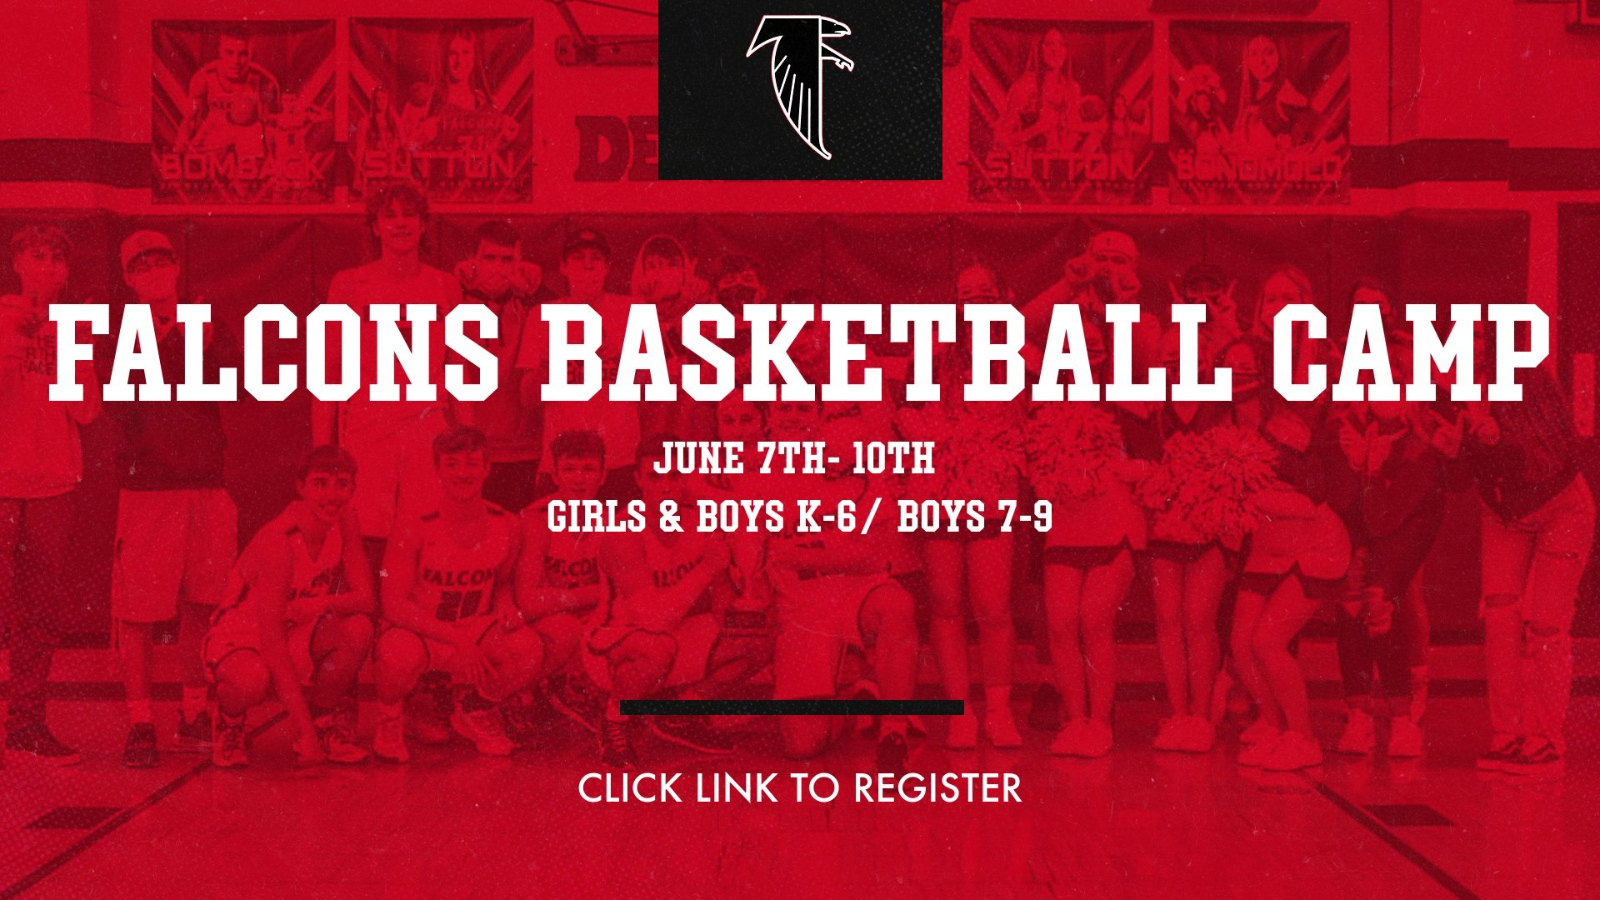 Falcons Basketball Camp Registration